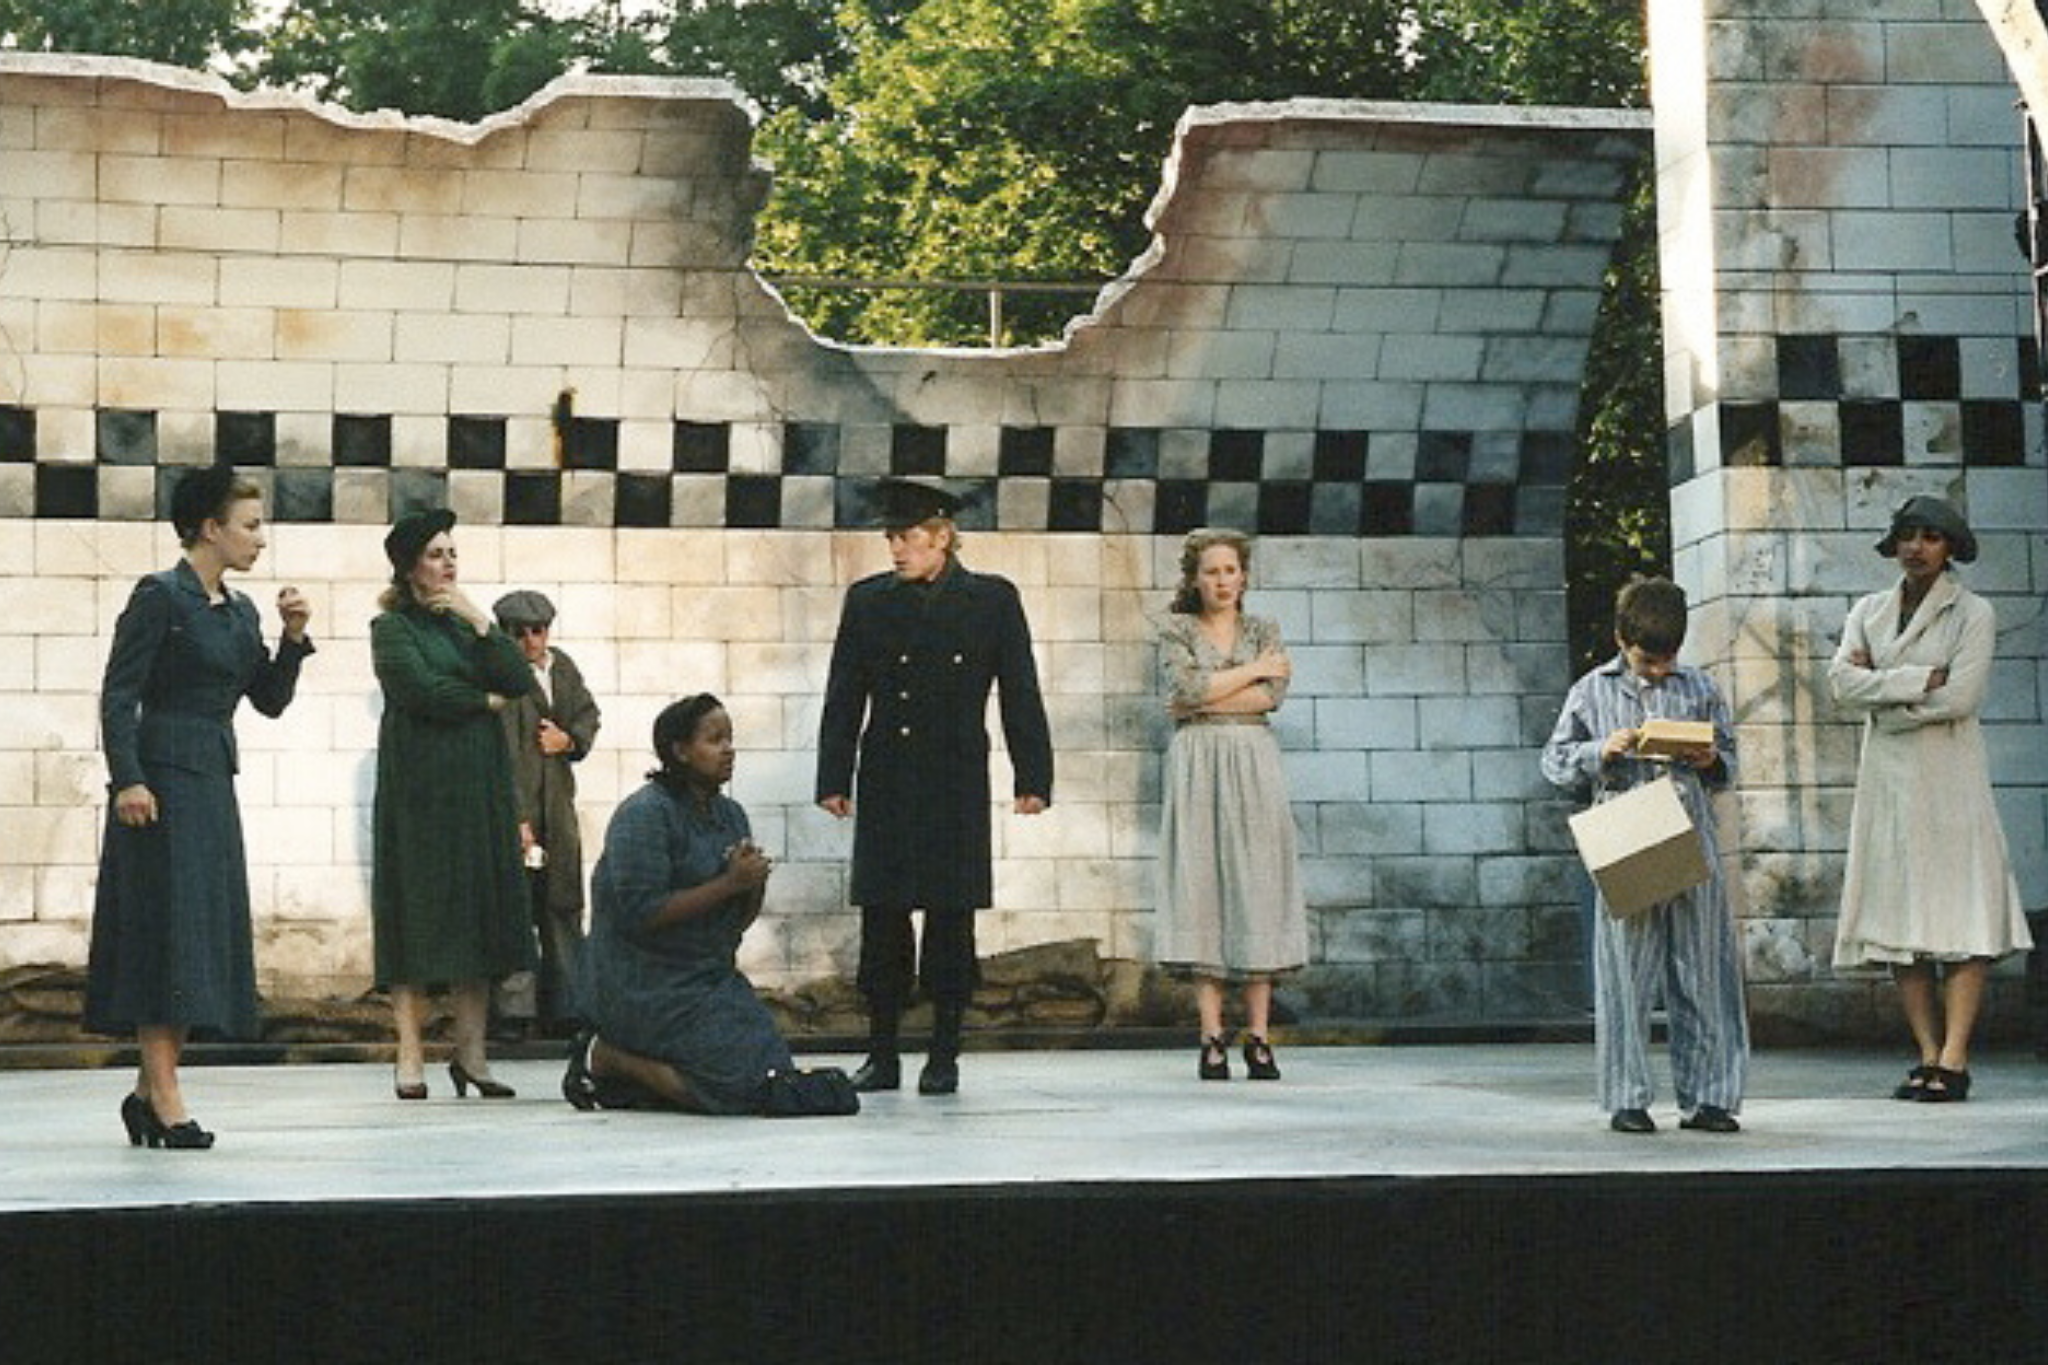 Marya Lowry (Chorus) in Henry V, Shakespeare on the Common 2002